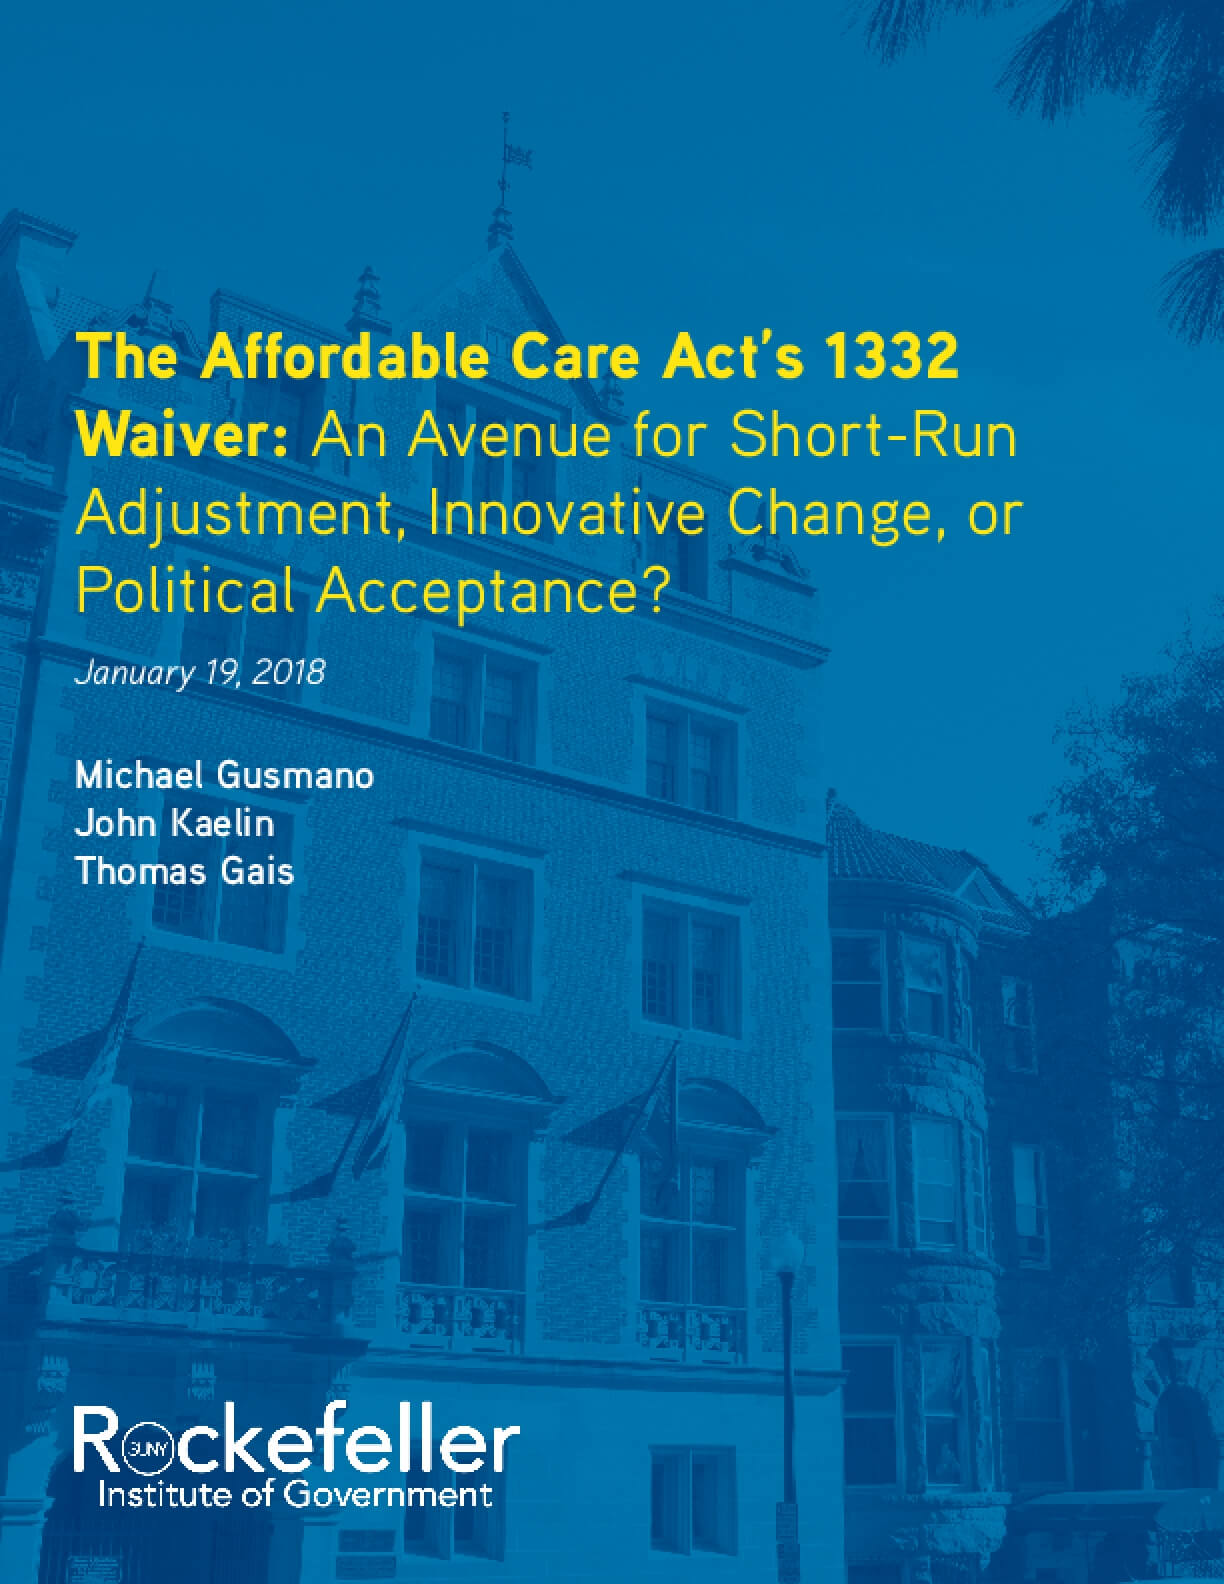 The Affordable Care Act's 1332 Waiver: An Avenue for Short-run Adjustment, Innovative Change, or Political Acceptance?